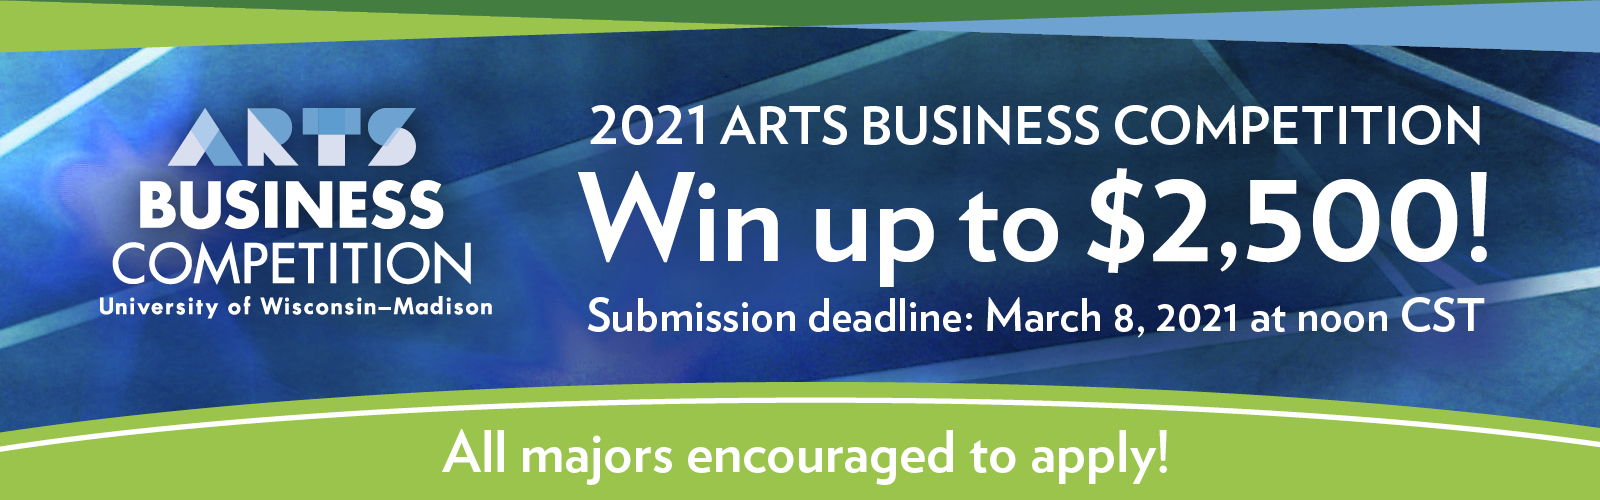 2021 Arts Business Competition. Win up to $2,500! Submission deadline: March 8, 2021 at noon CST. All majors encouraged to apply!